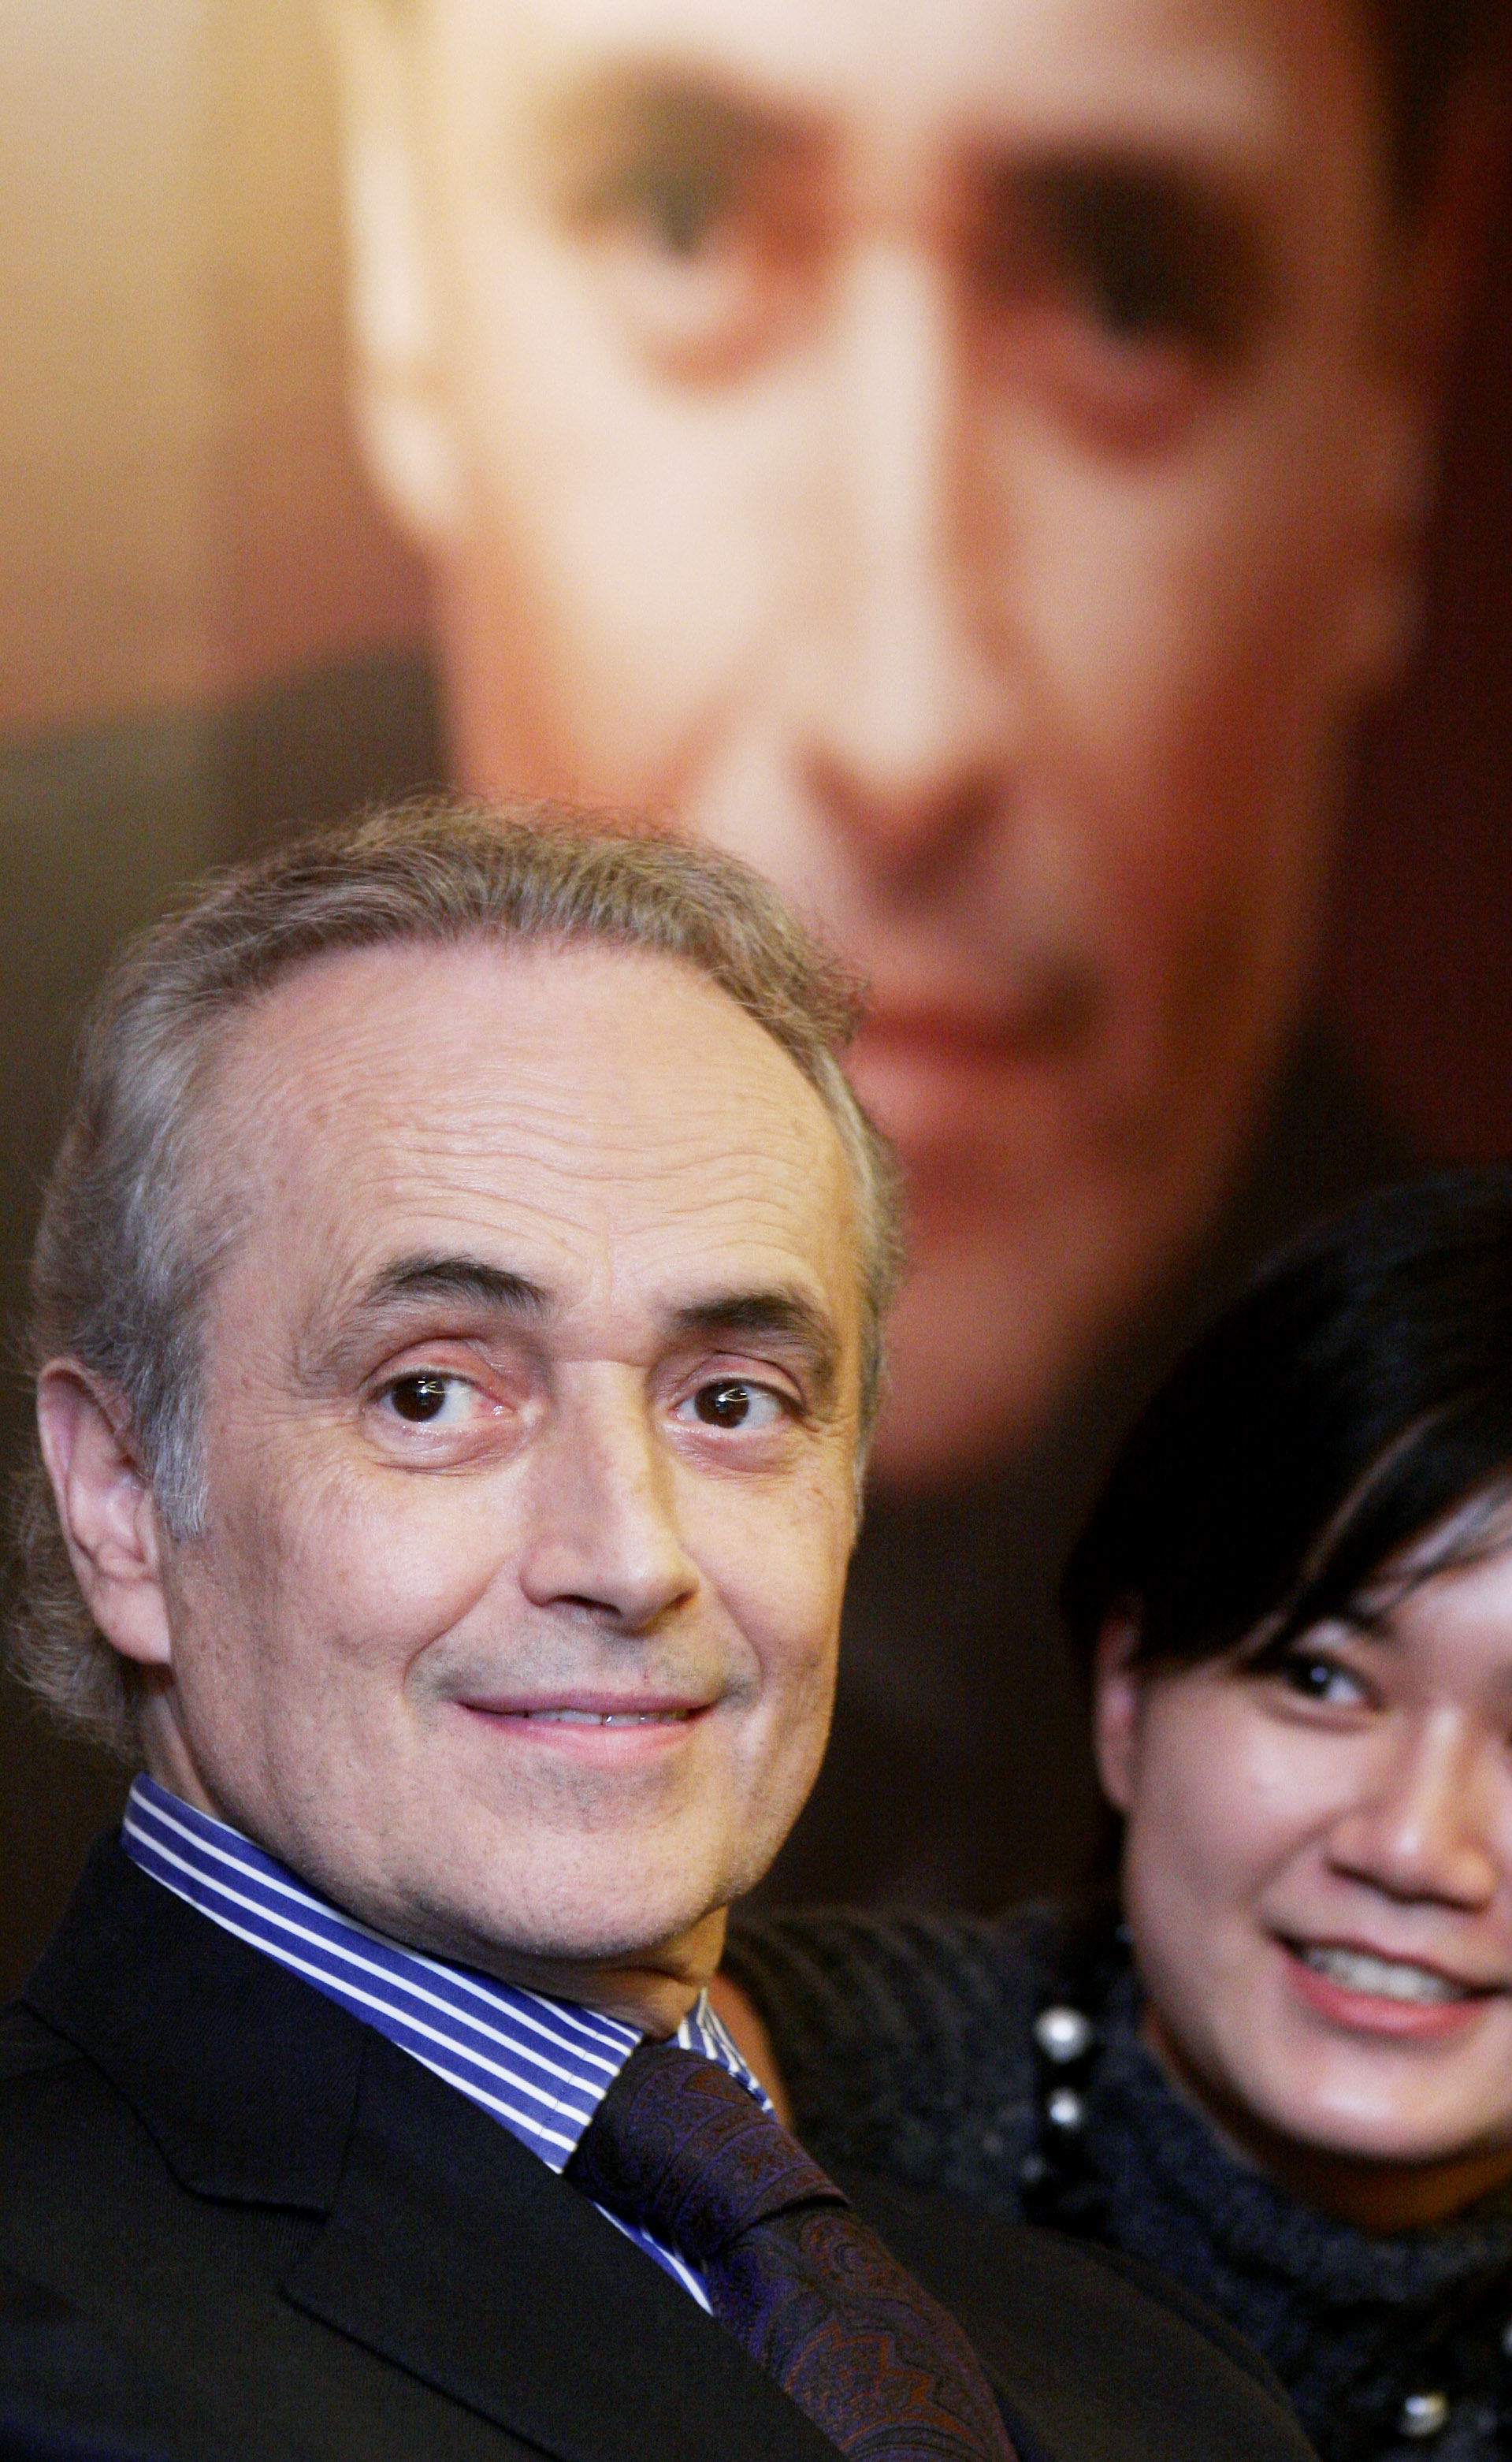 Spanish tenor Jose Carreras smiles during a news conference to promote his New Year's Eve concert in Taipei December 28, 2006.